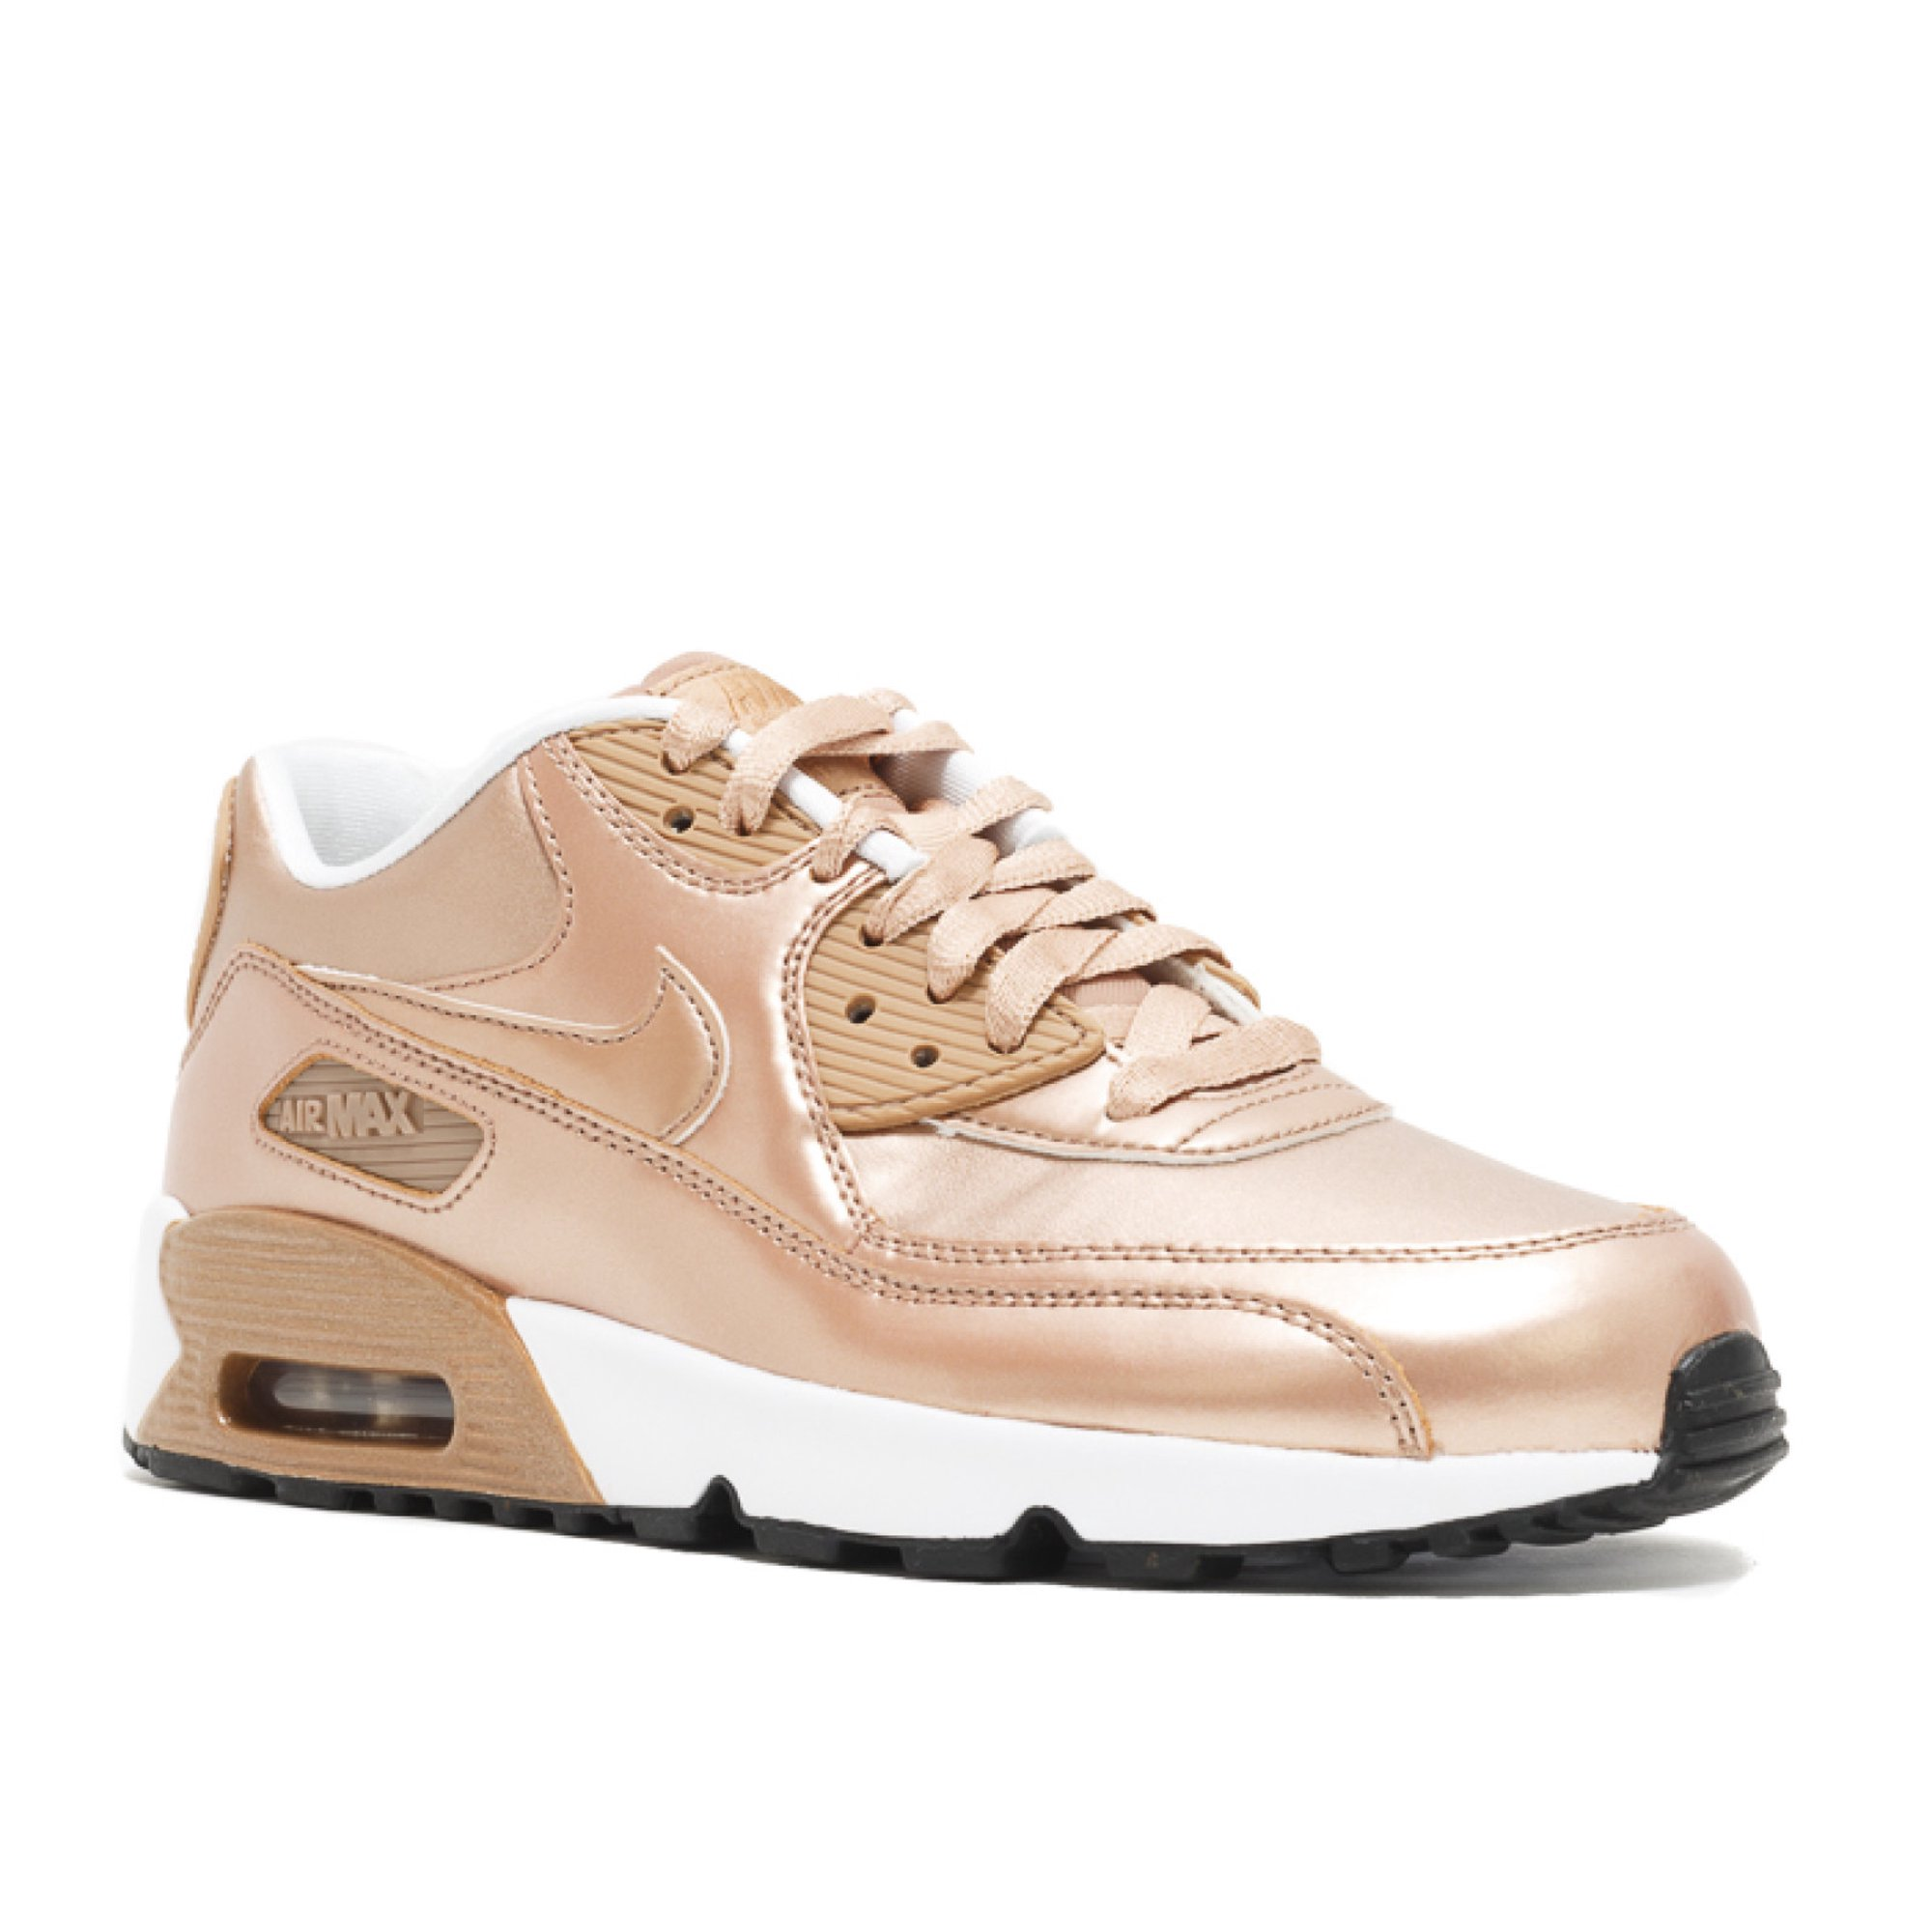 88a3cd86a363c Nike - Unisex - Air Max 90 Se Ltr (Gs) 'Metallic Bronze' - 859633 ...